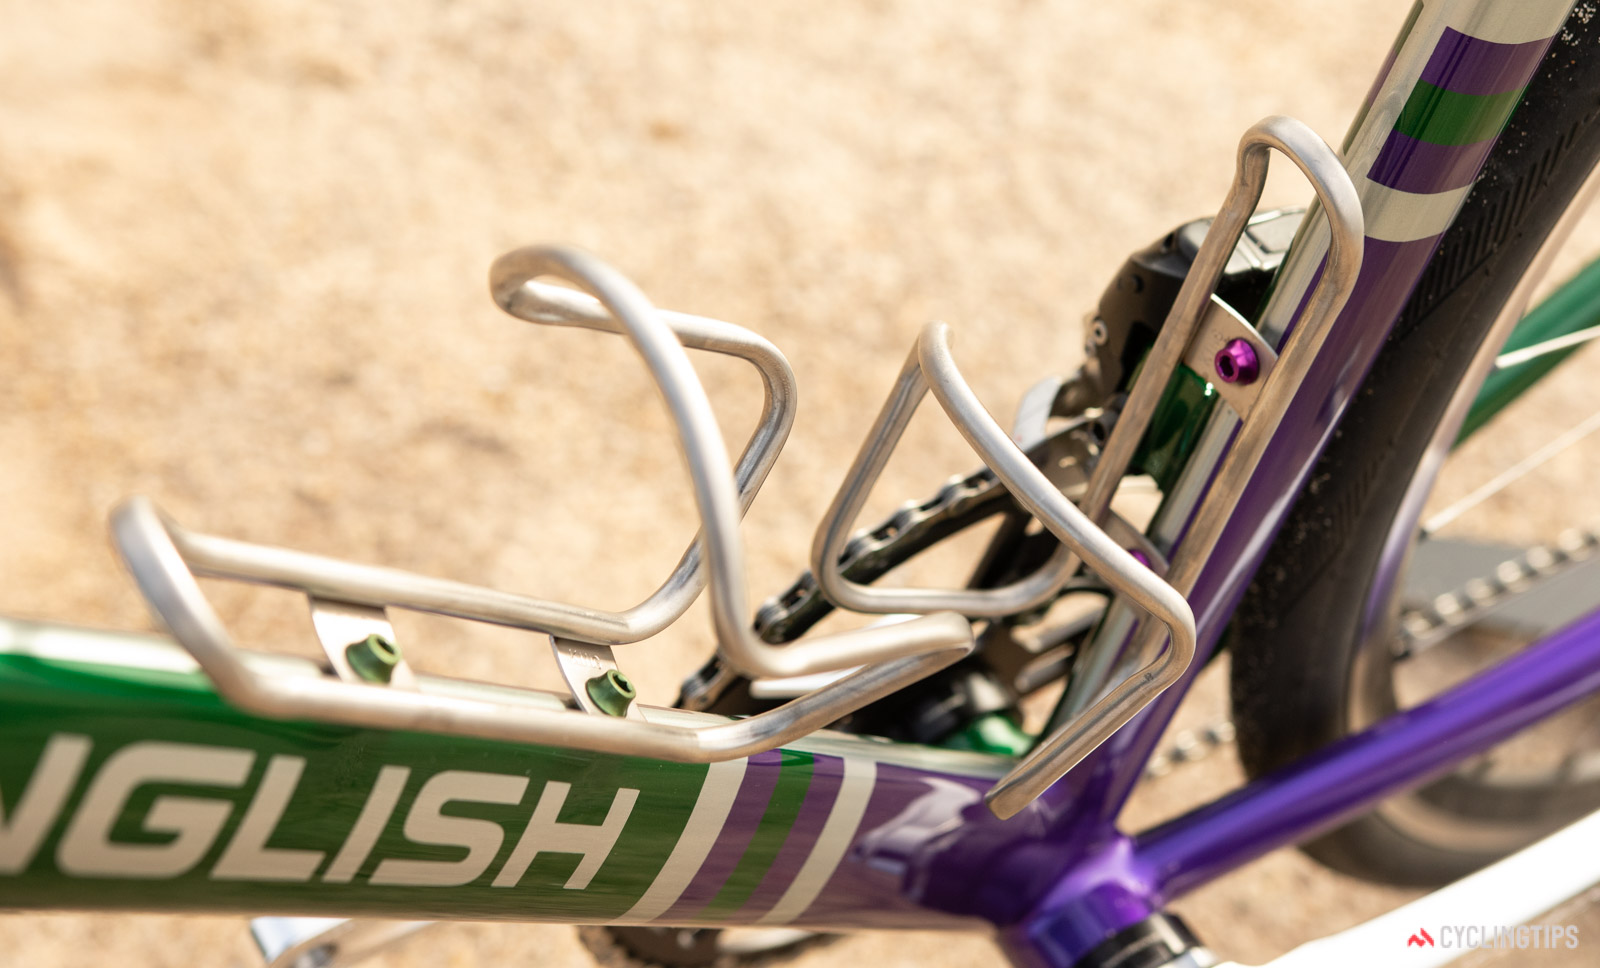 King titanium cages, wolf tooth bidon bolts